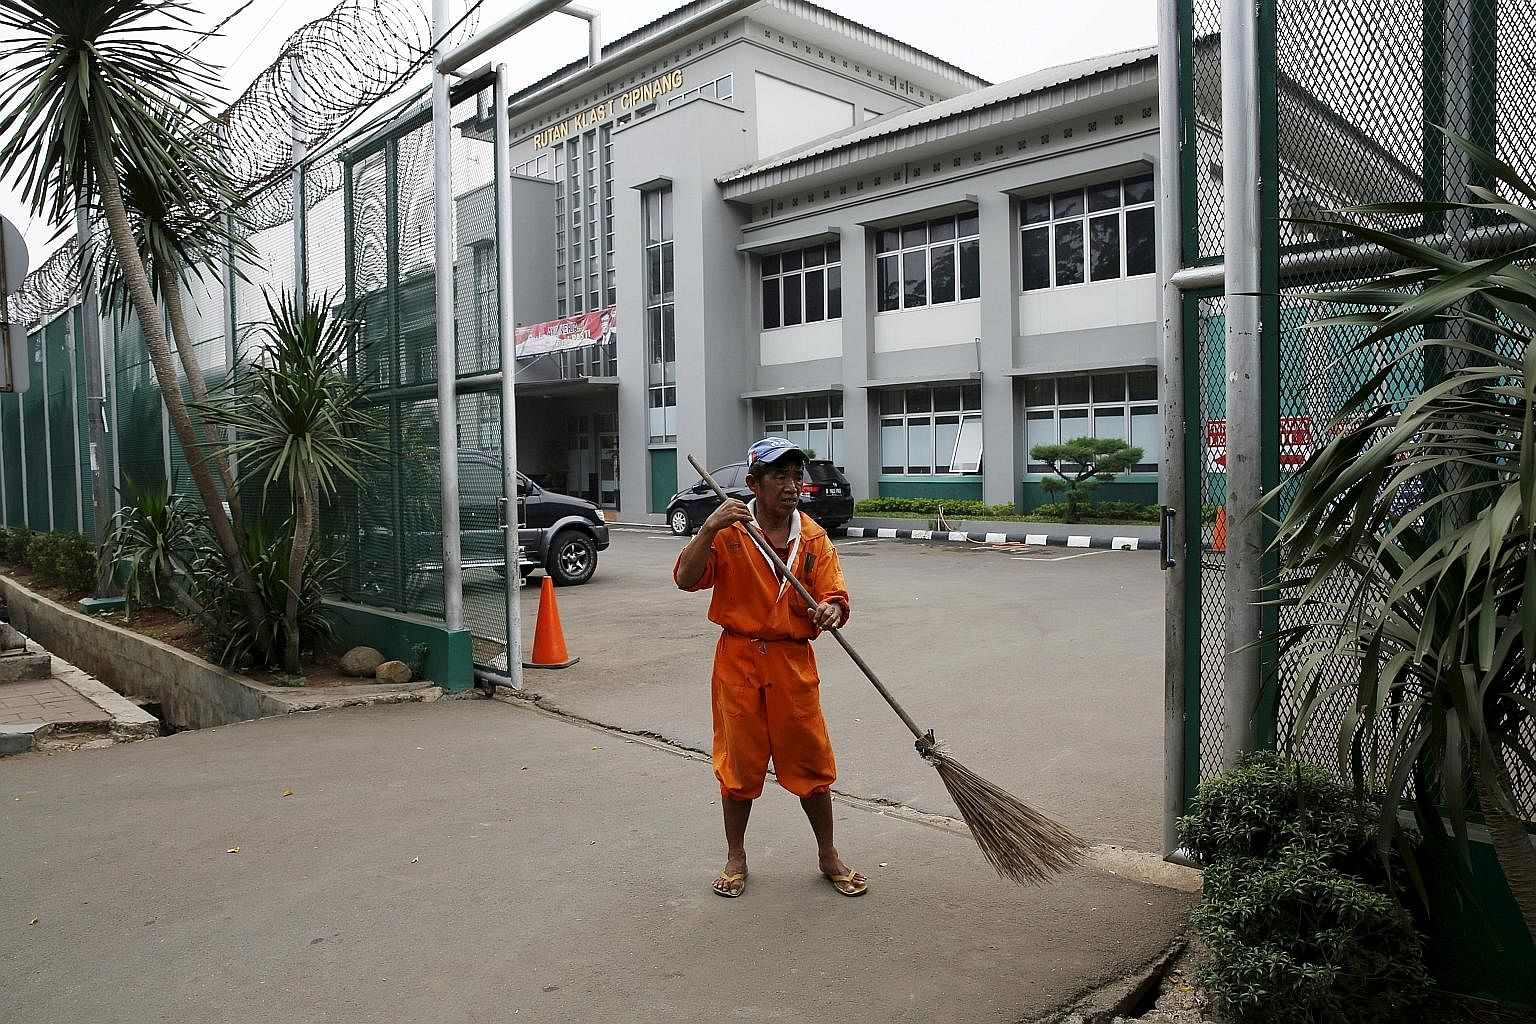 Cipinang Prison, where some of Indonesia's leading terrorists have at one time or another been jailed, is one of the few prisons in Indonesia that technically segregates terrorist inmates from other offenders. But it is perpetually overcrowded and, w